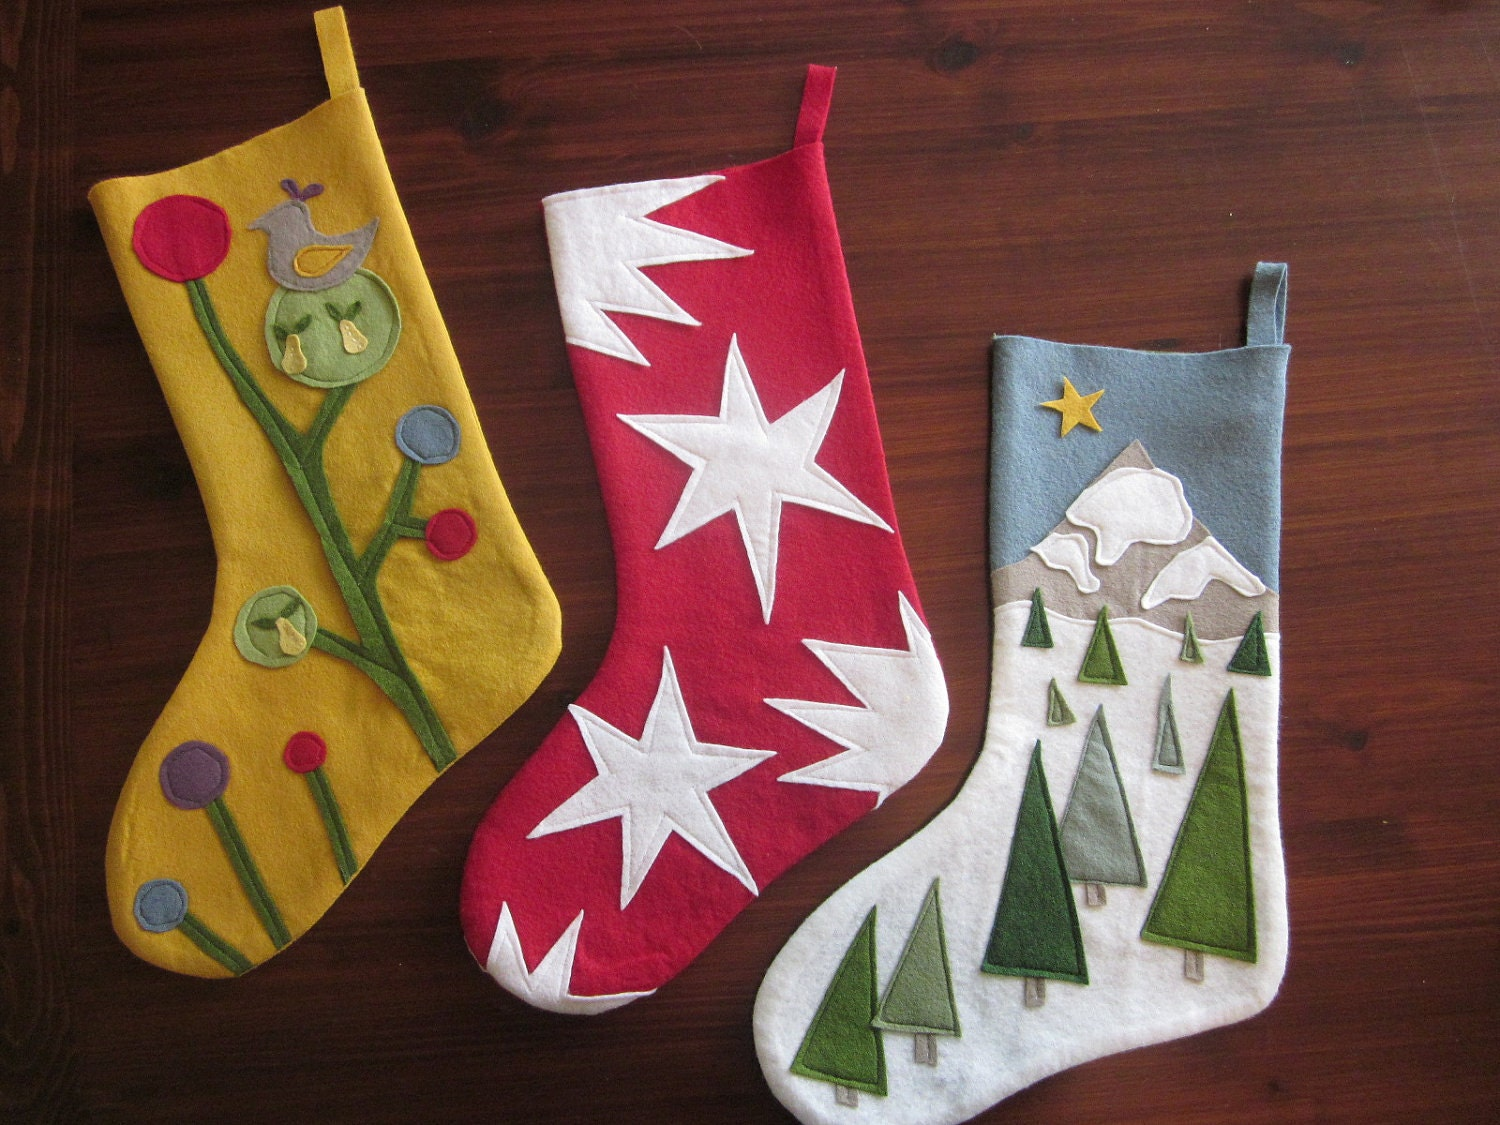 Decking The Halls Ornaments And Holiday Decor Etsy Journal